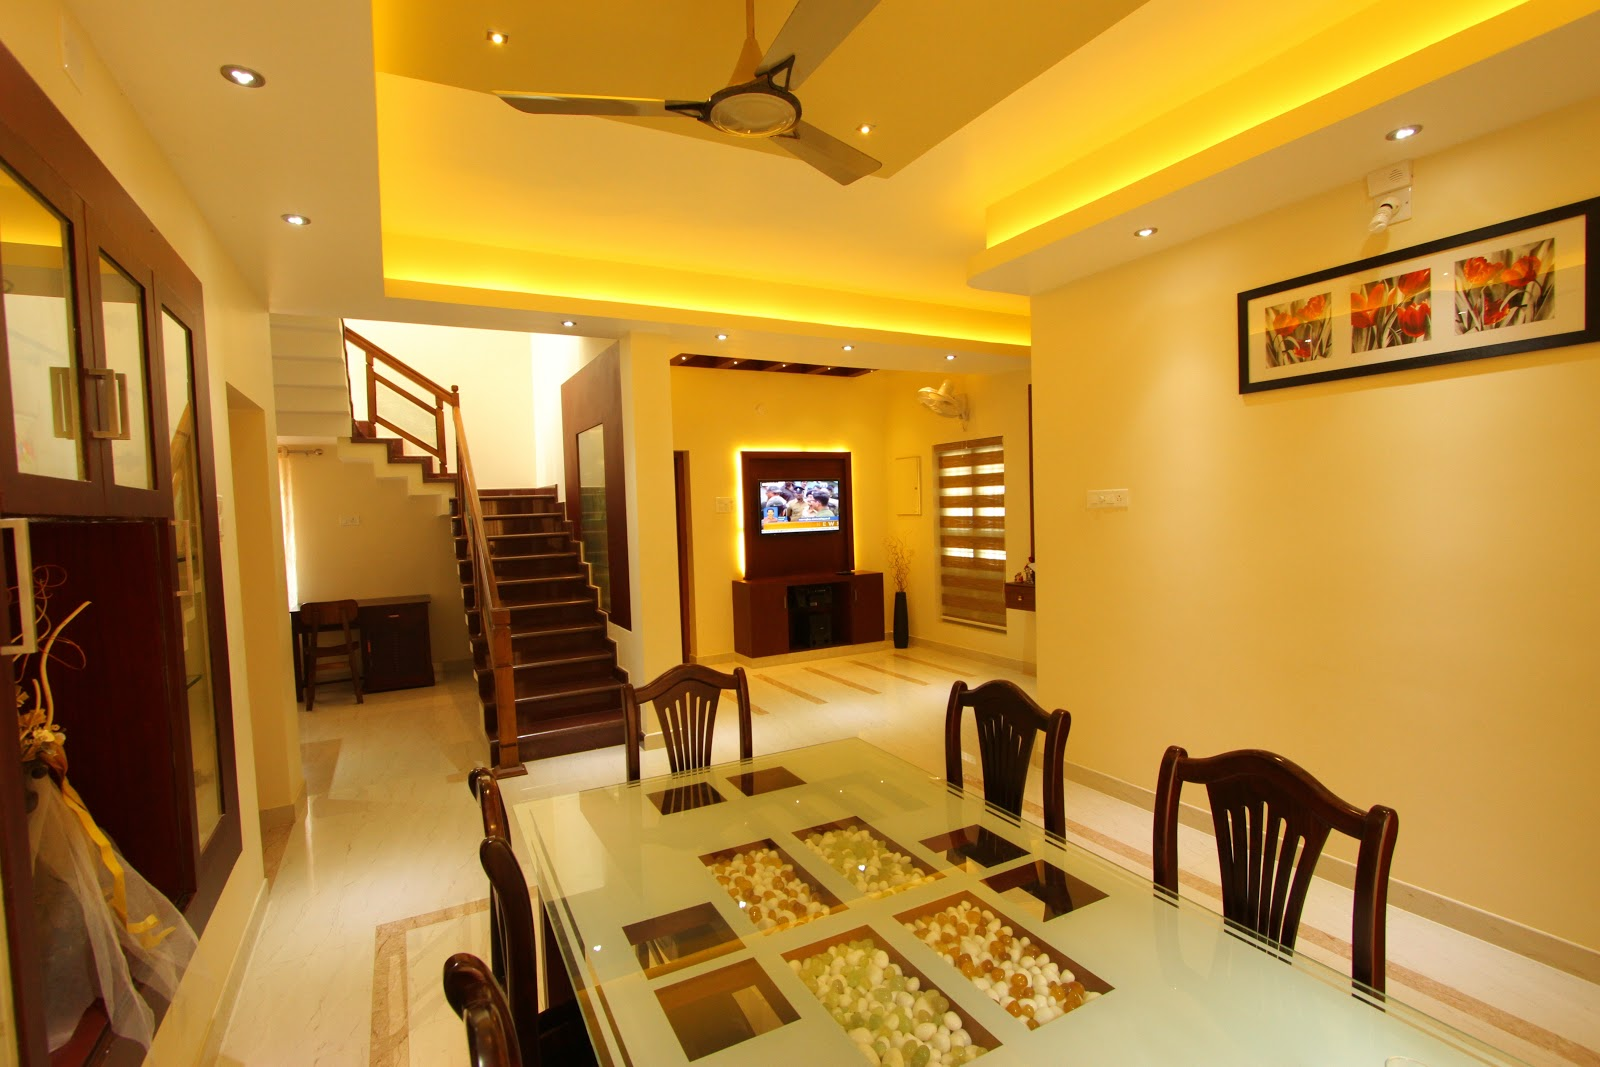 Shilpakala interiors award winning home interior design for Interior designs photos for home